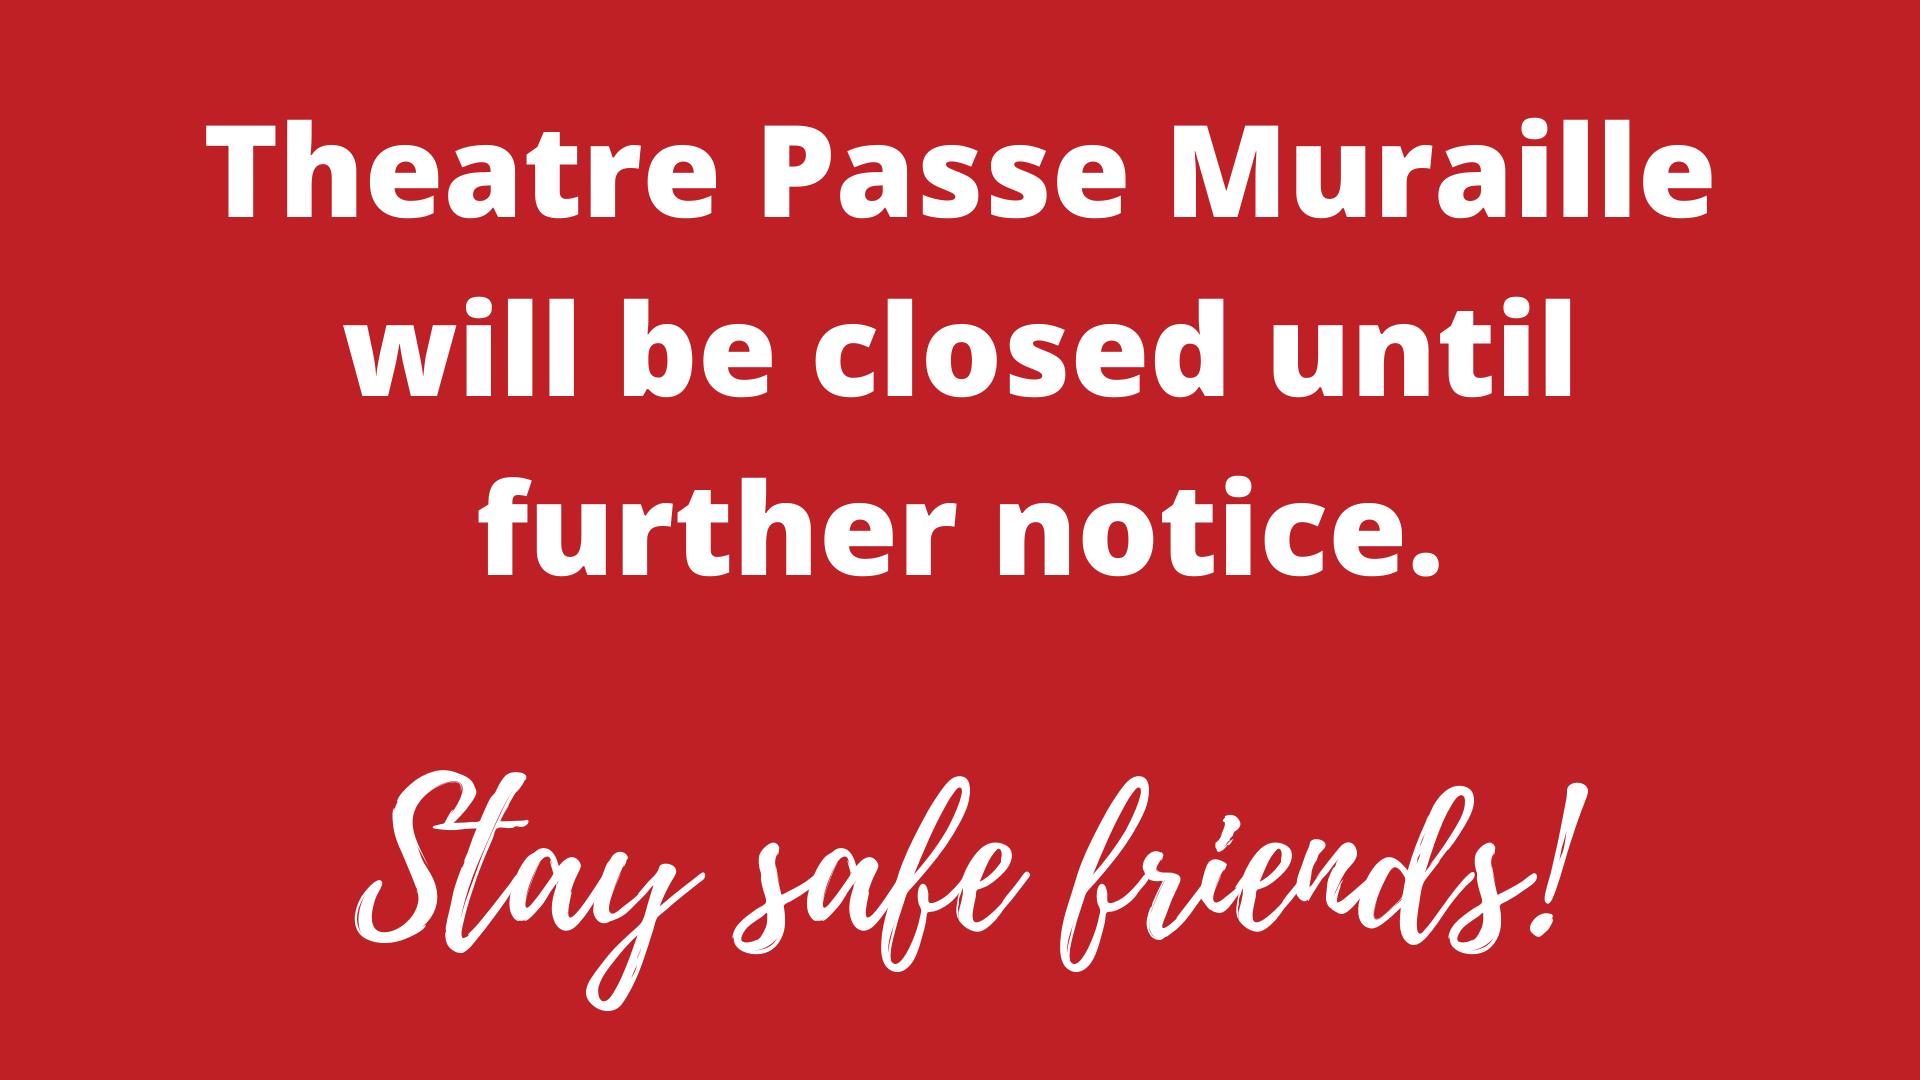 TPM will be closed until further notice. Stay safe friends!